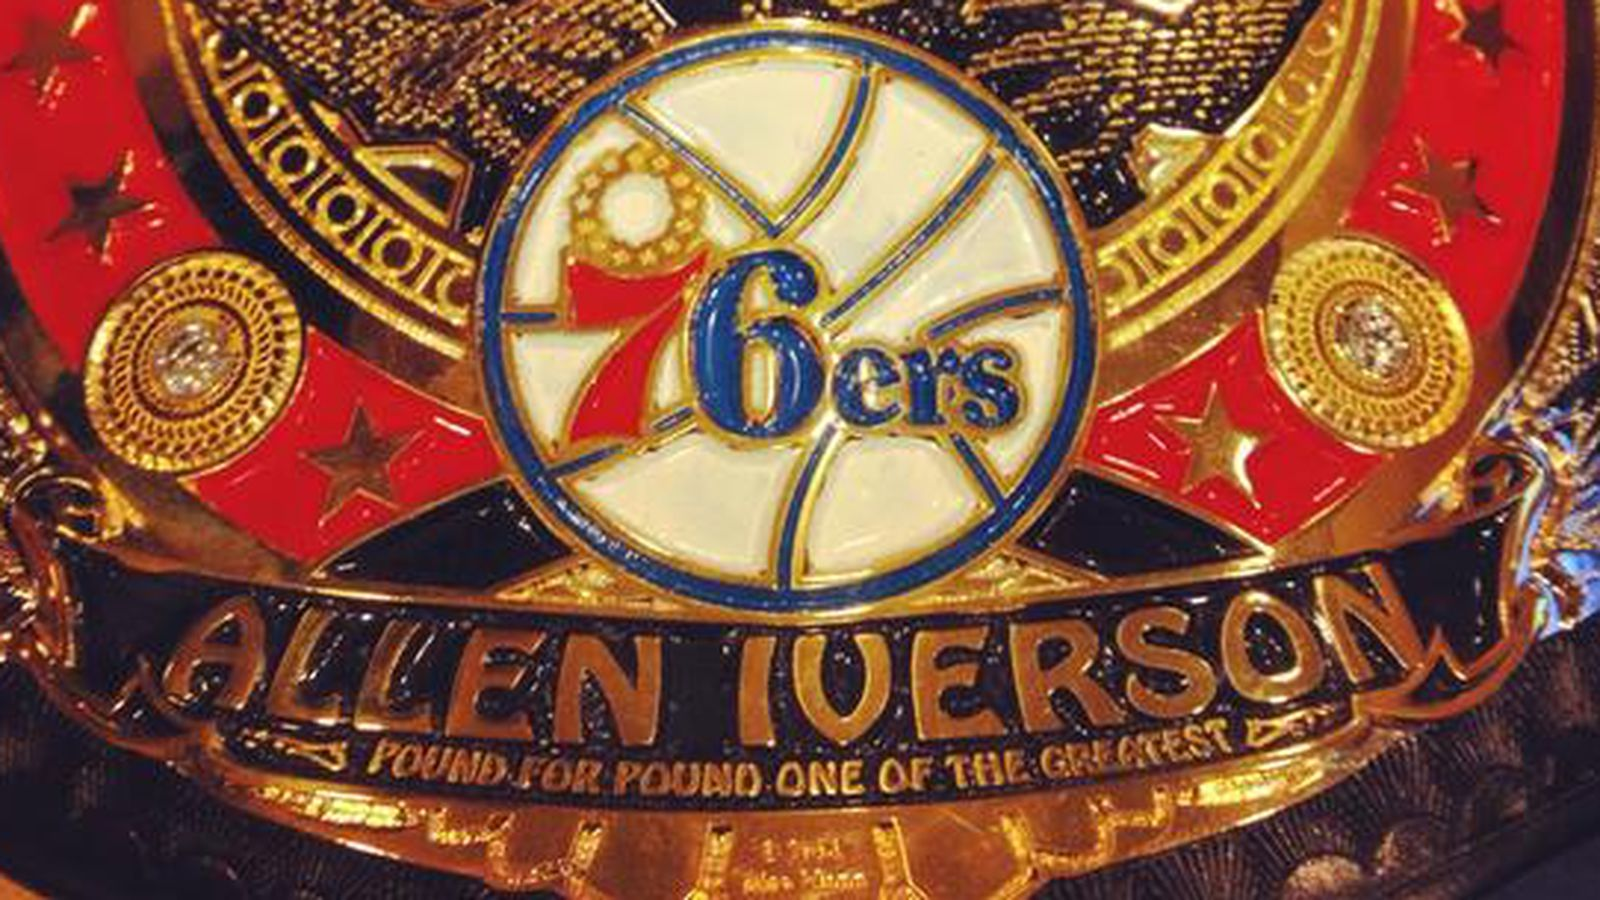 Allen Iverson has his own championship belt - SBNation.com